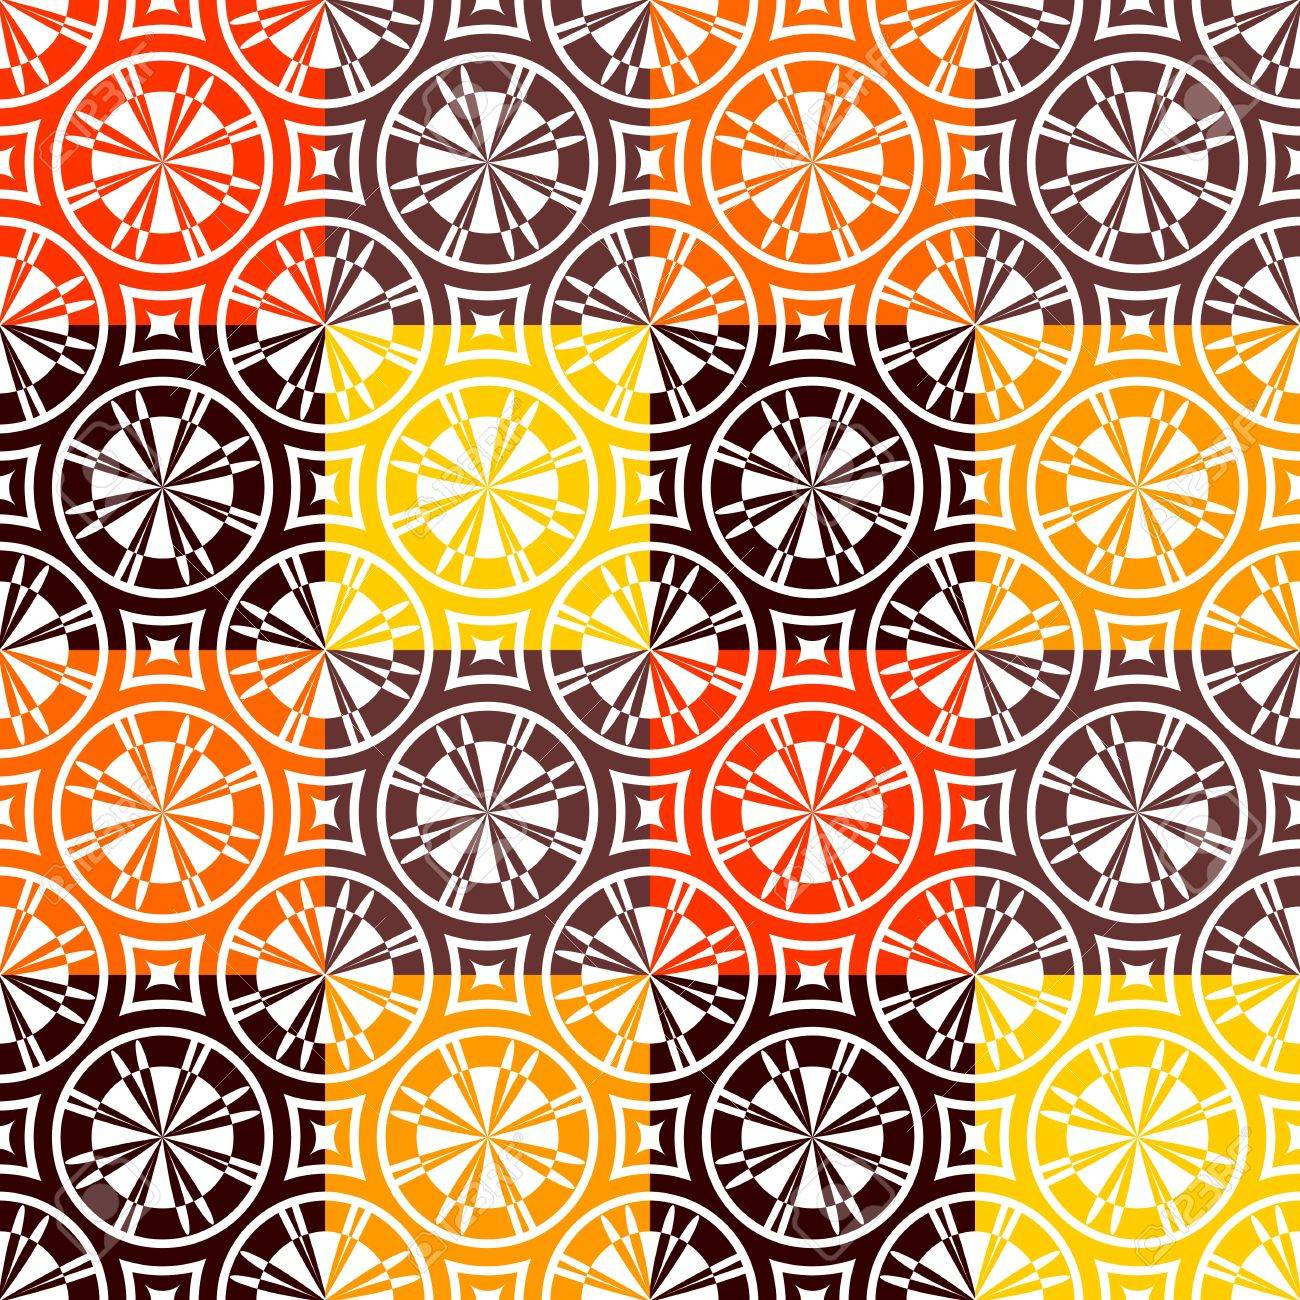 Seamless checked pattern in warm colors - 14088637